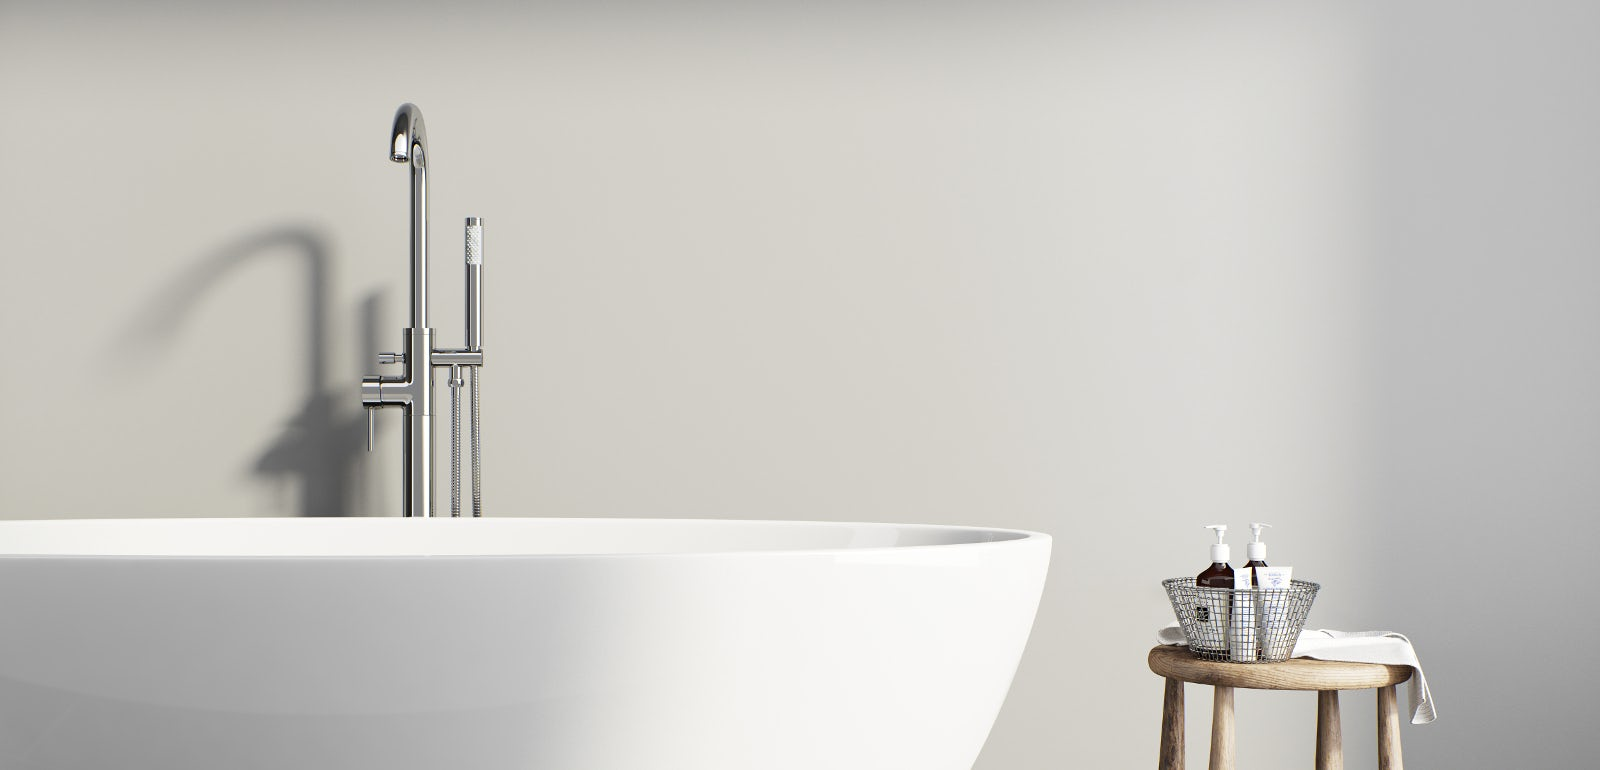 Tell steel baths good or bad. Or is it better to buy acrylic or cast iron 88